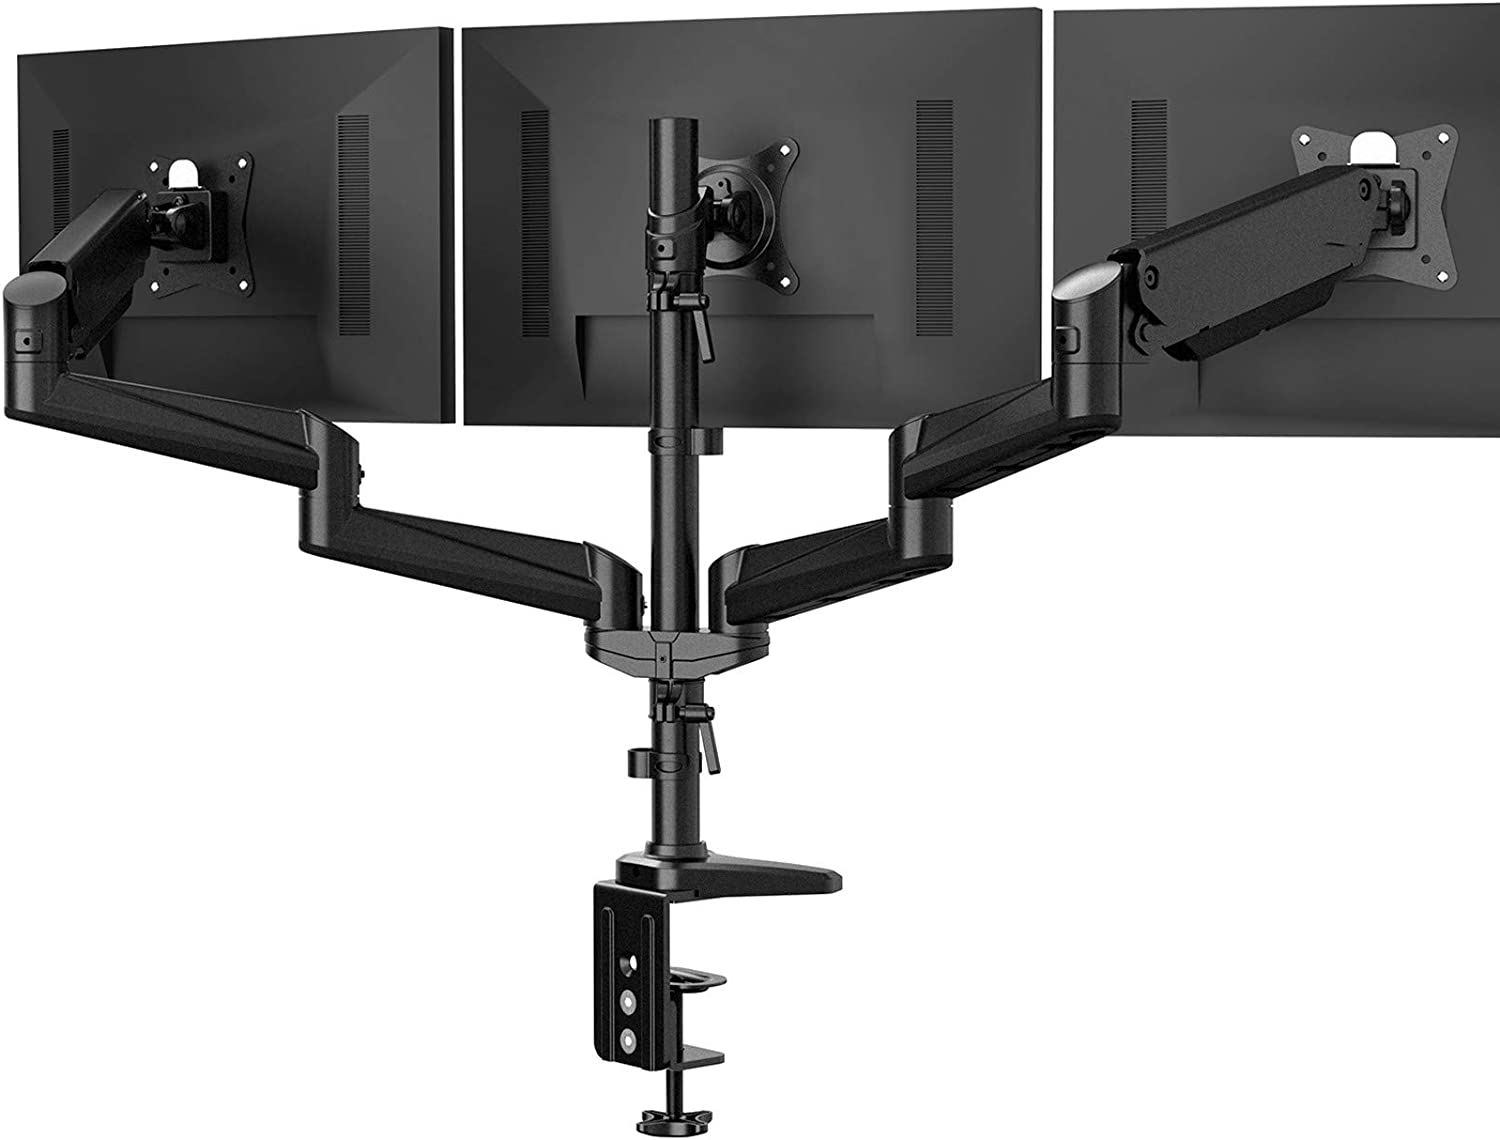 HUANUO Triple Monitor Stand - Full Motion Articulating Aluminum Gas Spring Monitor Mount Fits Three 17 to 32 inch Flat/Curved LCD Computer Screens with Clamp, Grommet Kit, Black